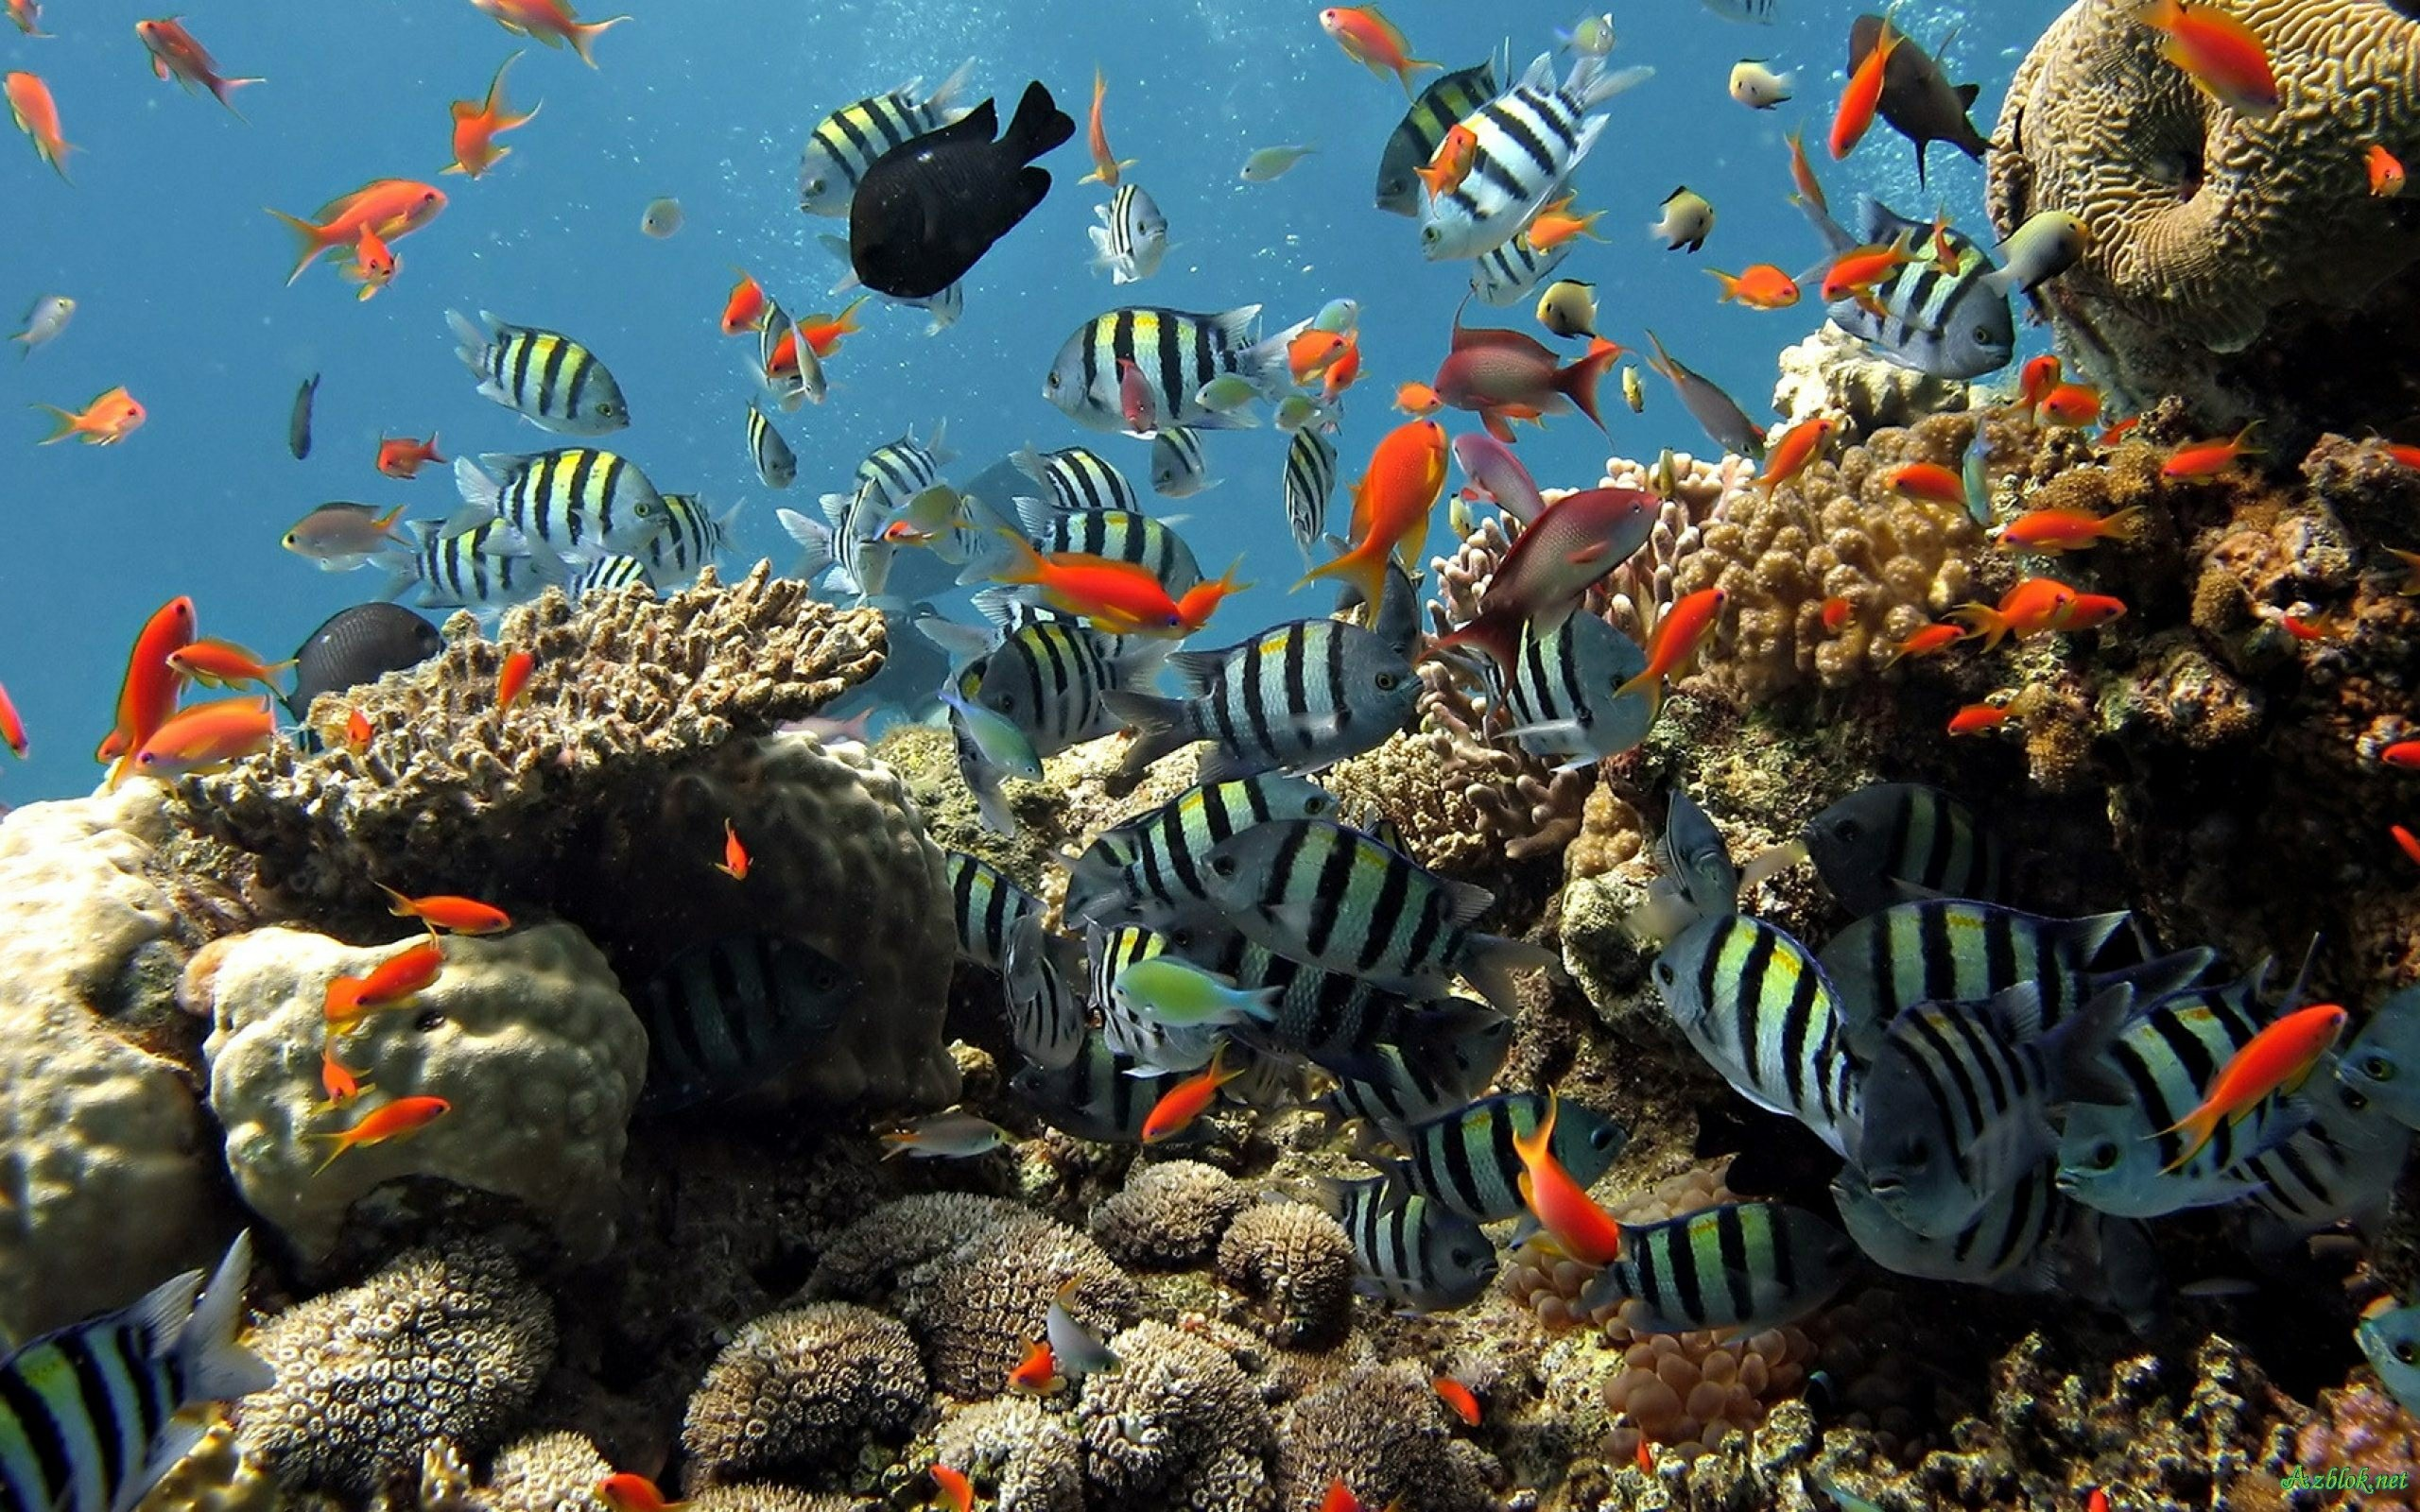 2560x1600 Aquarium Live Wallpaper For Pc Free Download